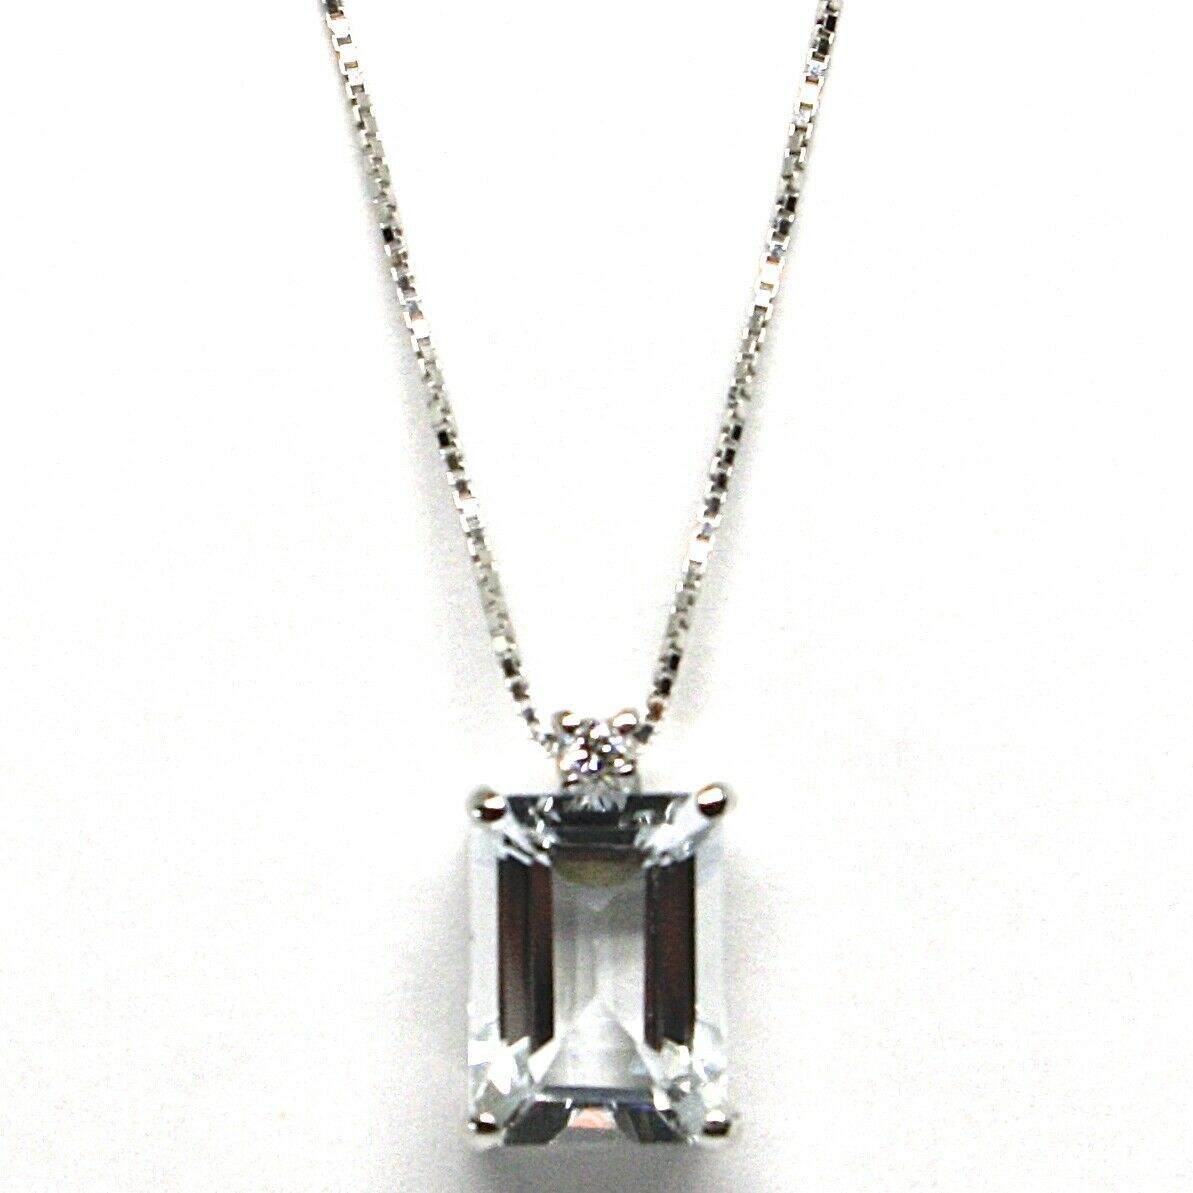 18K WHITE GOLD NECKLACE AQUAMARINE 1.30 EMERALD CUT & DIAMOND, PENDANT & CHAIN